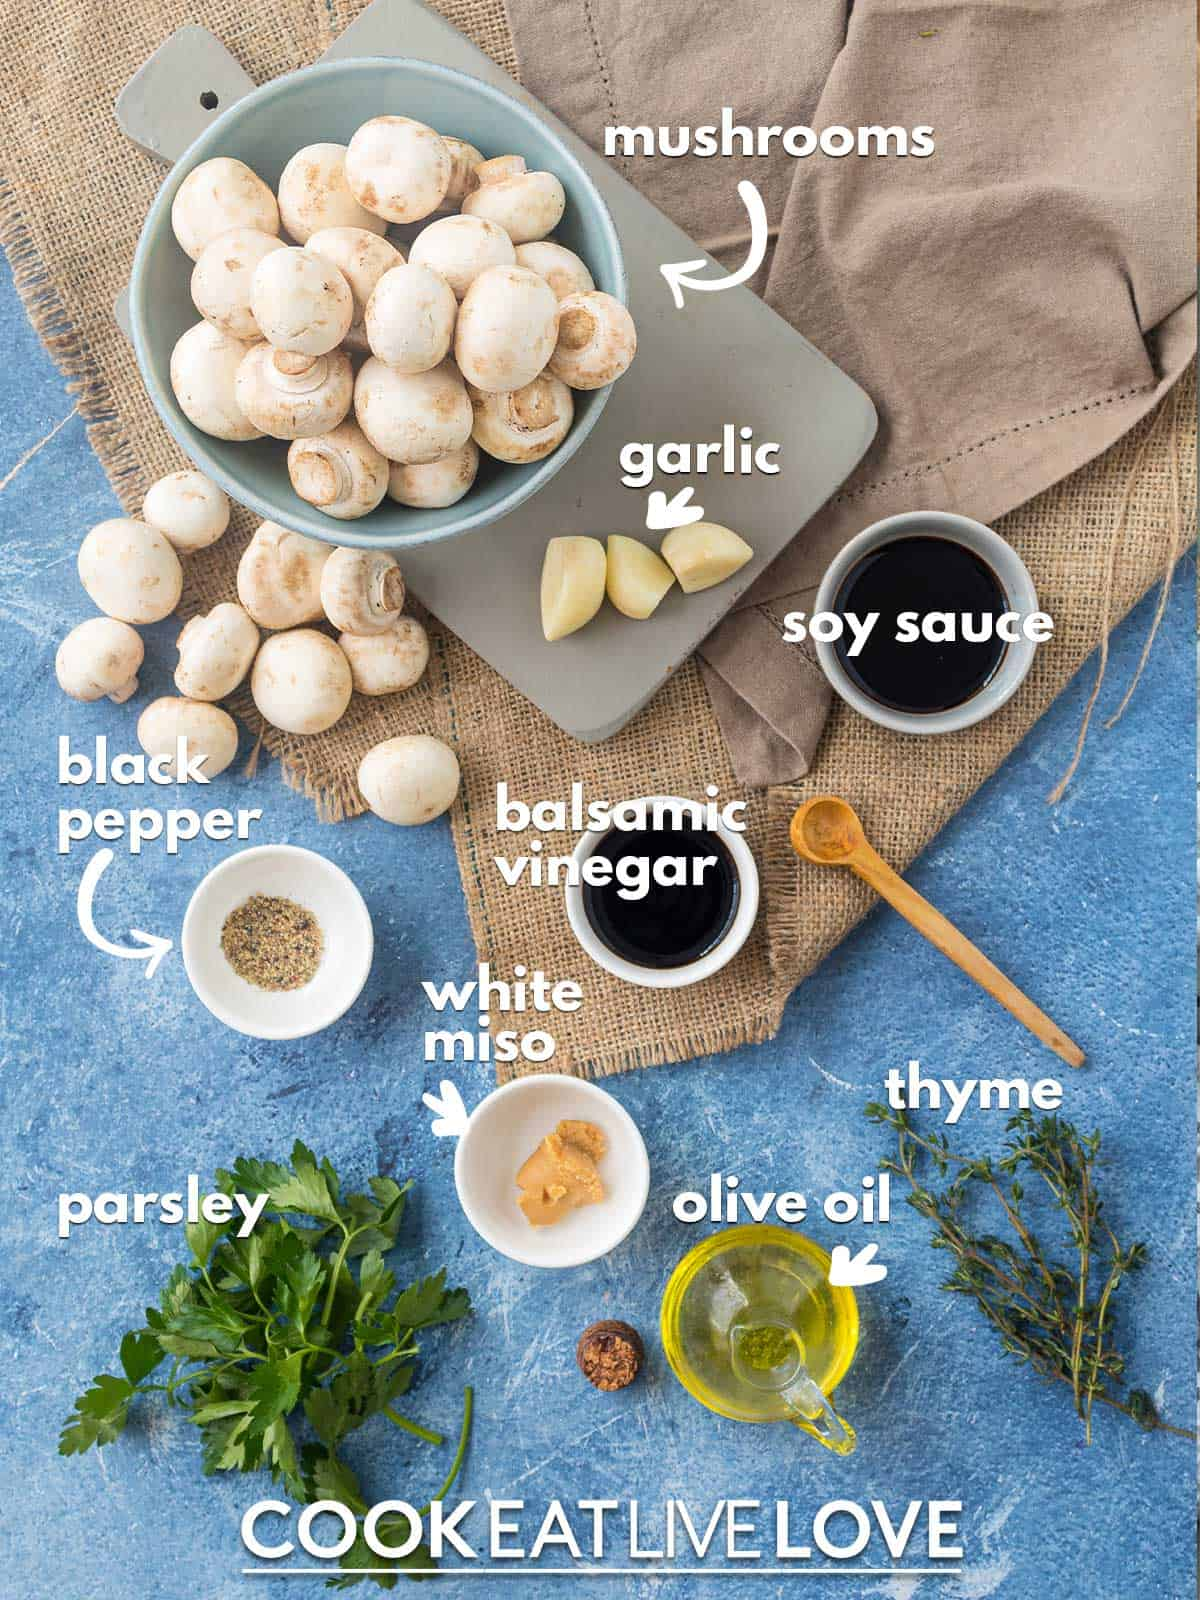 Ingredients to make miso mushrooms on a table